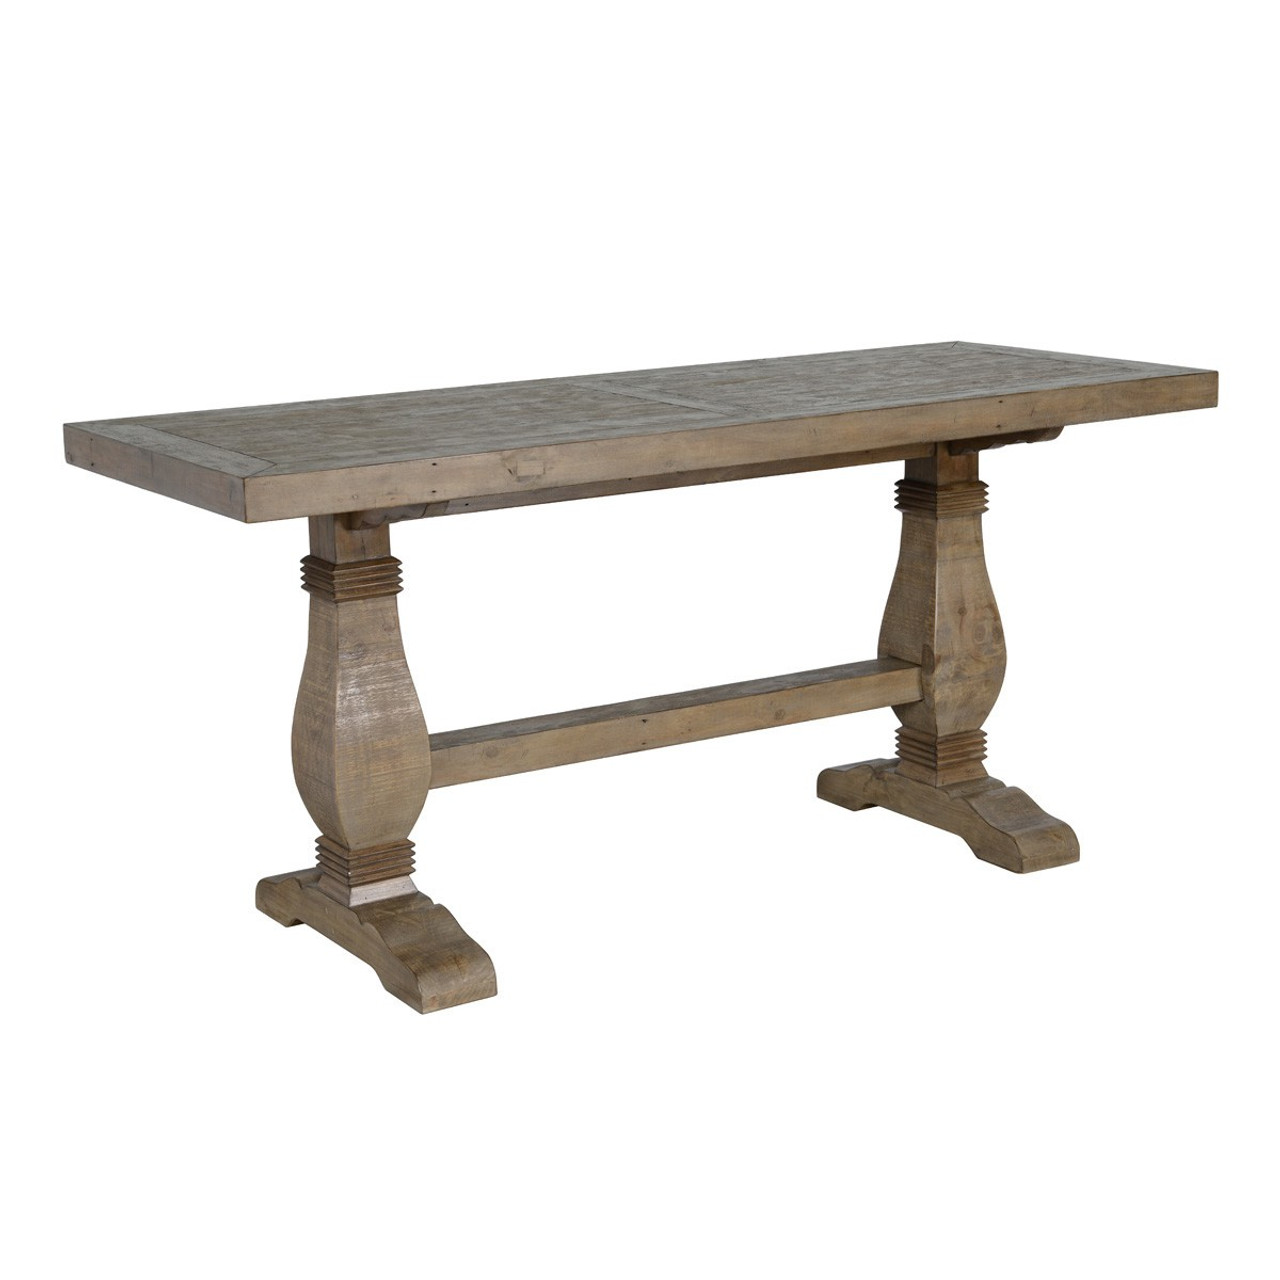 Farmhouse Reclaimed Wood Double Trestle Counter Height Table 77